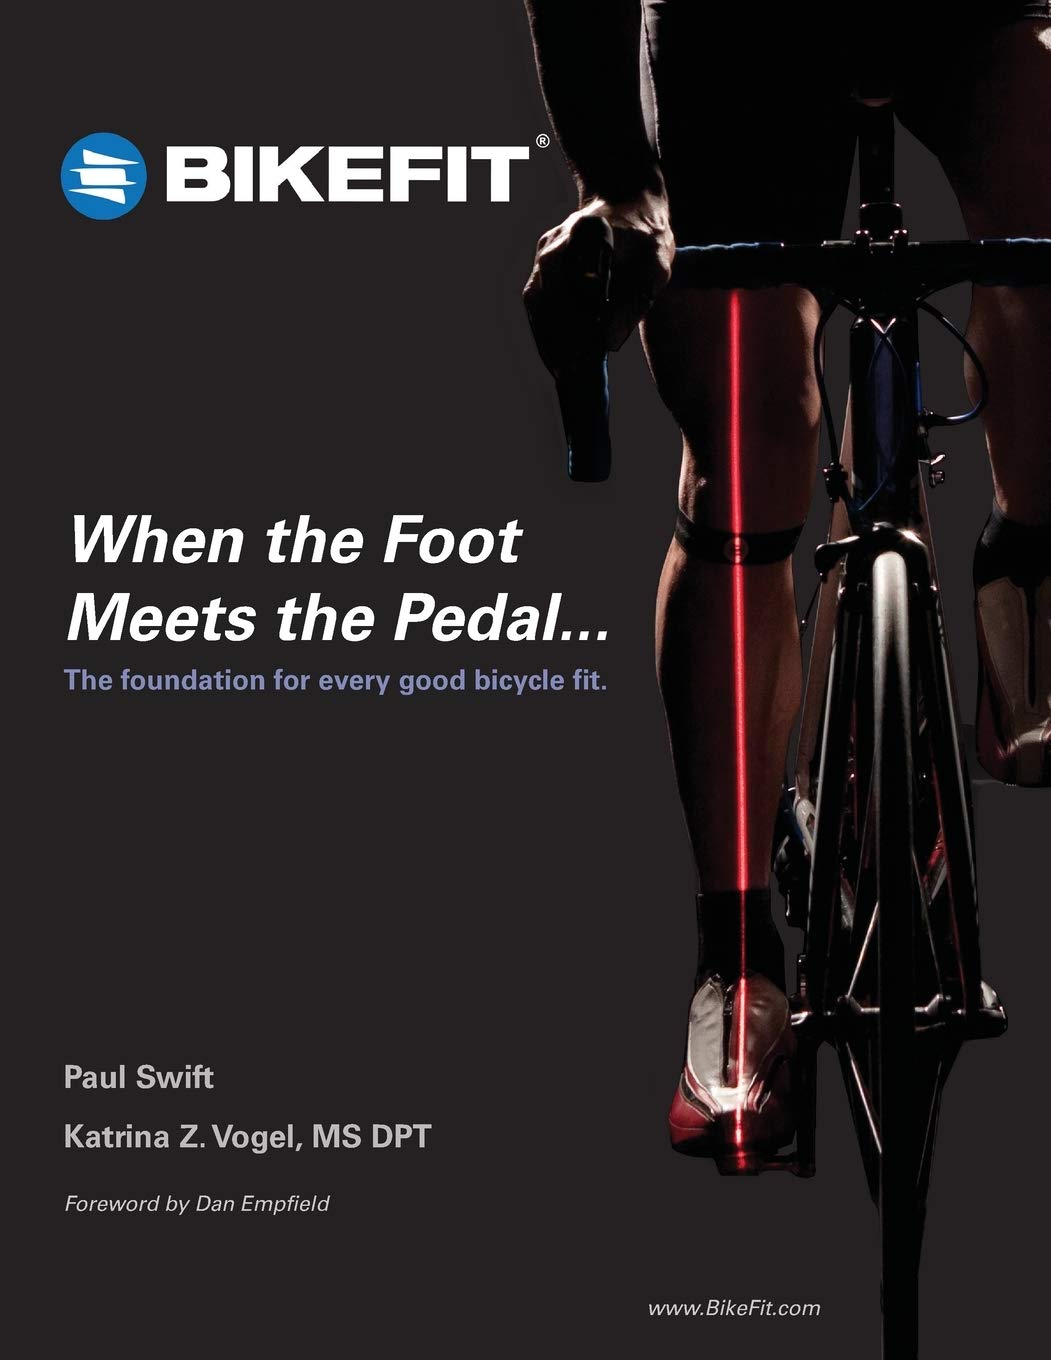 Image OfWhen The Foot Meets The Pedal...: The Foundation For Every Good Bicycle Fit